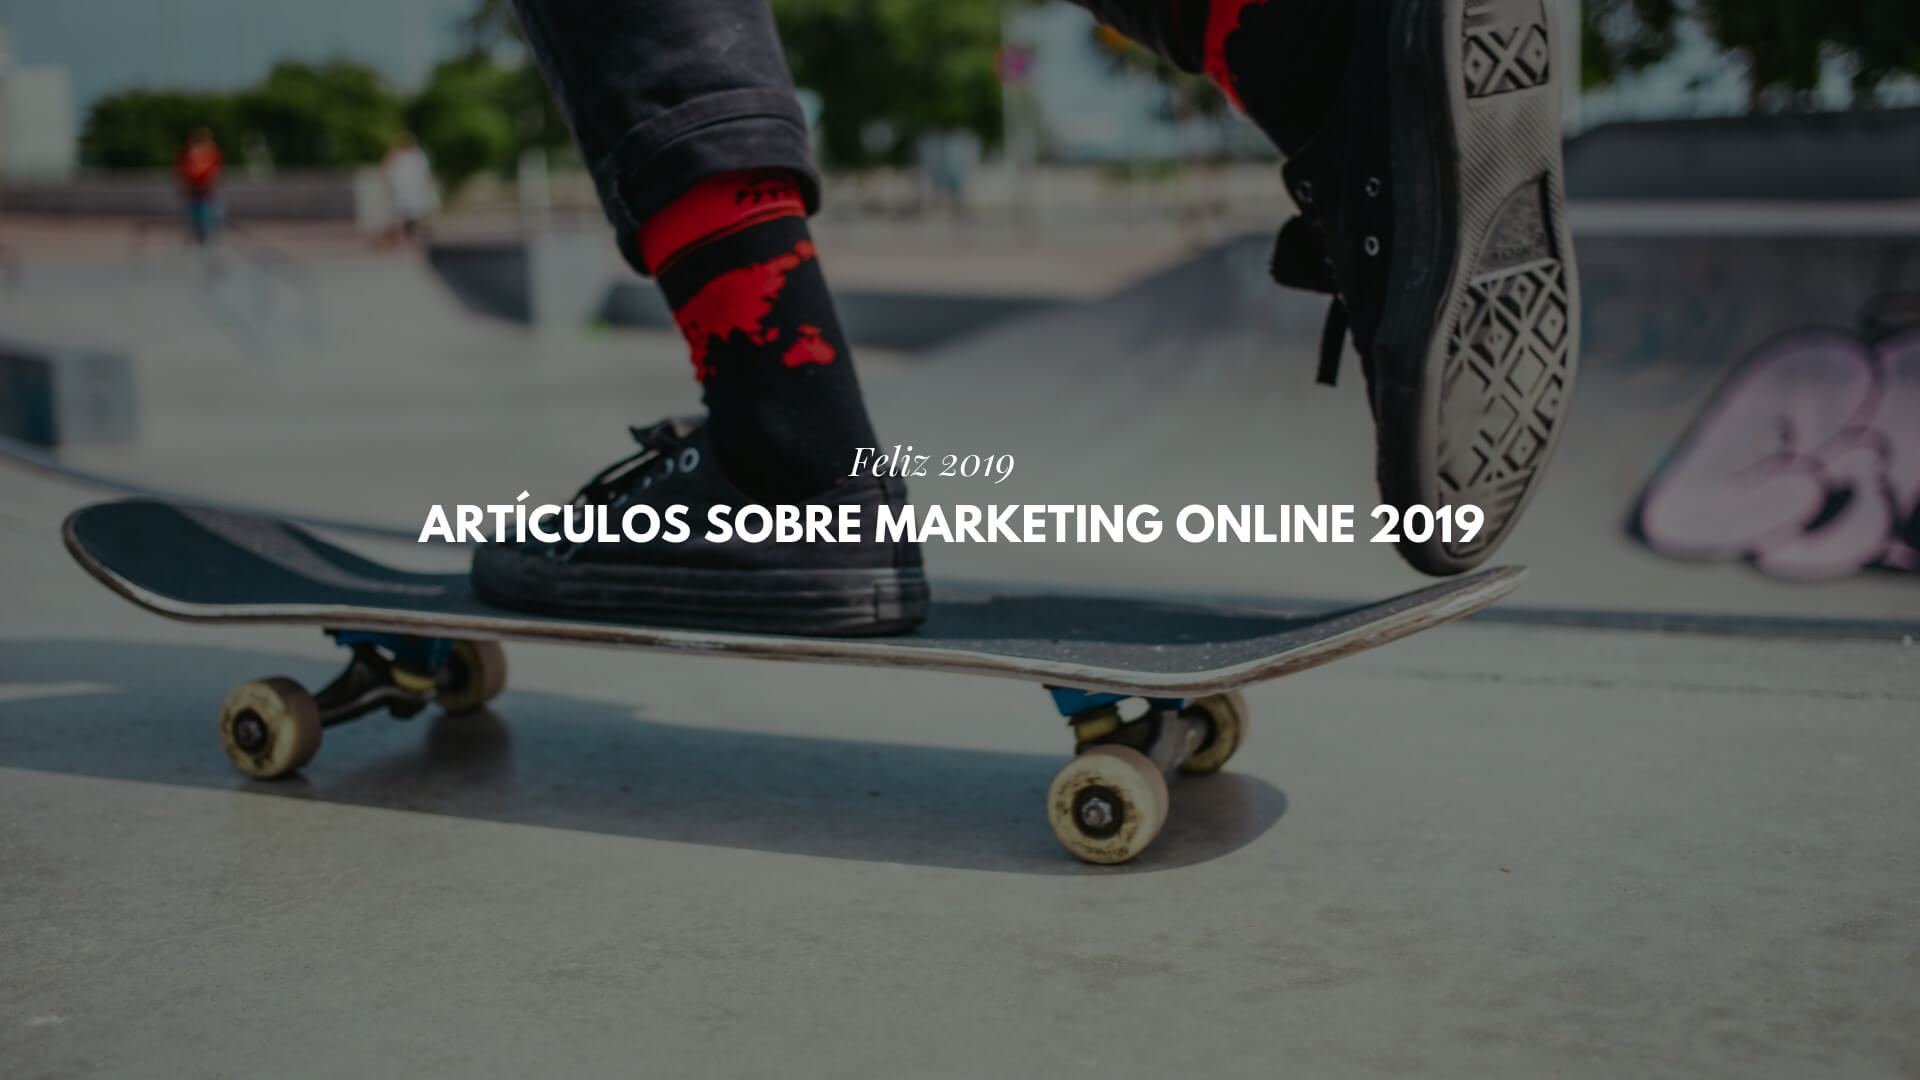 20 artículos sobre Marketing Online 2019 imprescindibles para leer